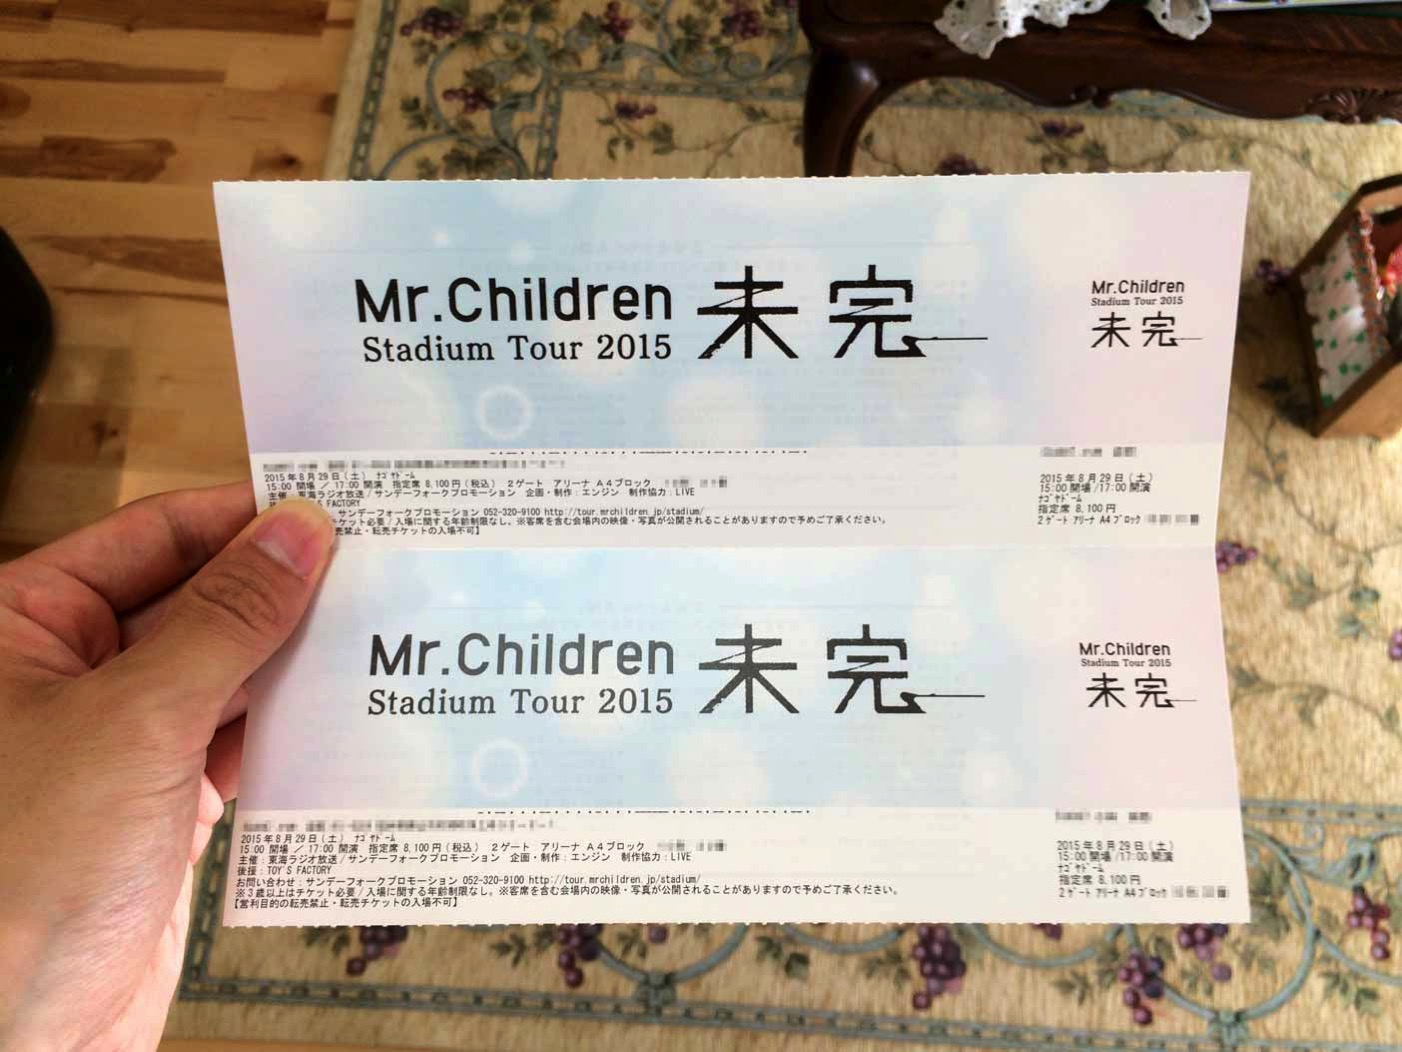 Mr.Children Stadium Tour 2015 未完のチケット